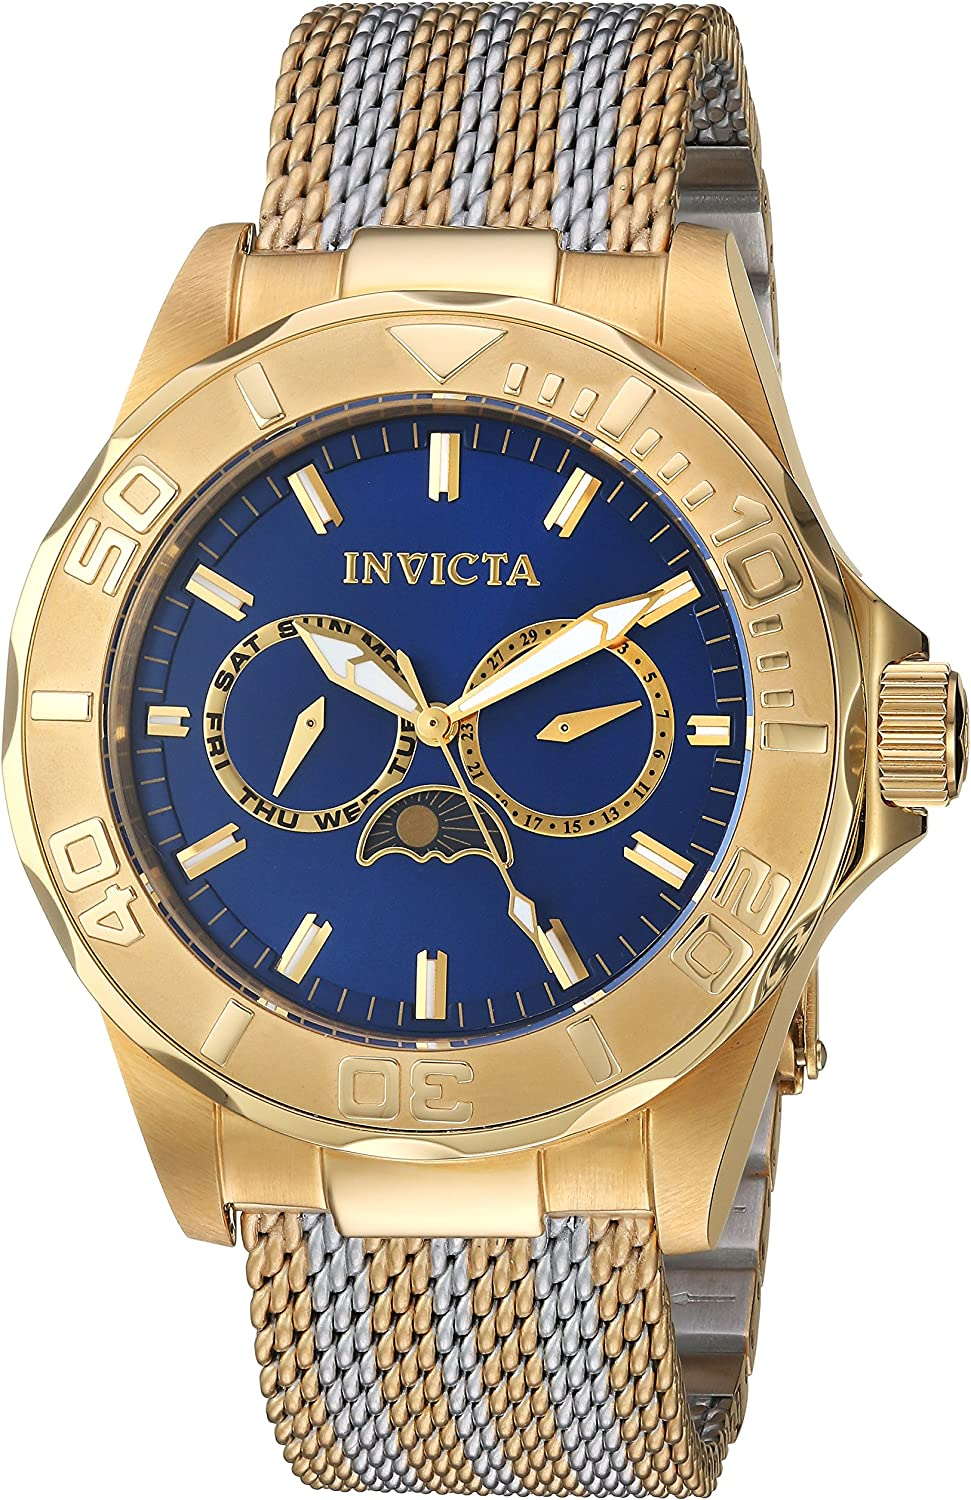 Invicta Men s Pro Diver Quartz Watch with Two-Tone-Stainless-Steel Strap, 22 Model 24993